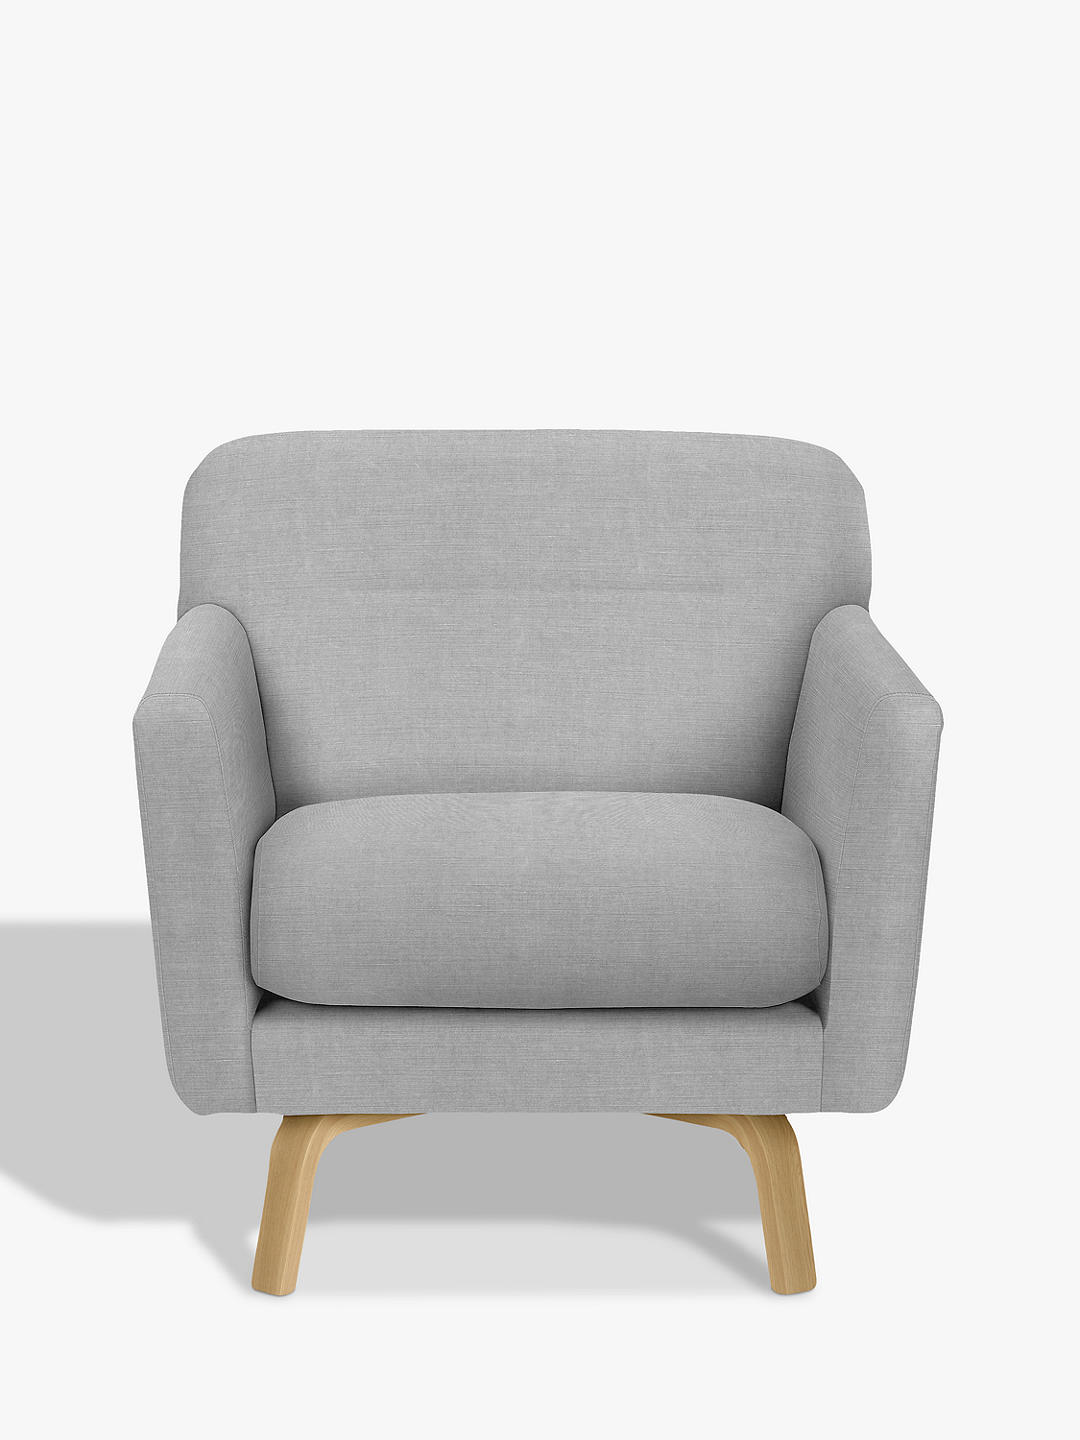 Buy House by John Lewis Archie II Armchair, Light Leg, Pepper Blossom Online at johnlewis.com